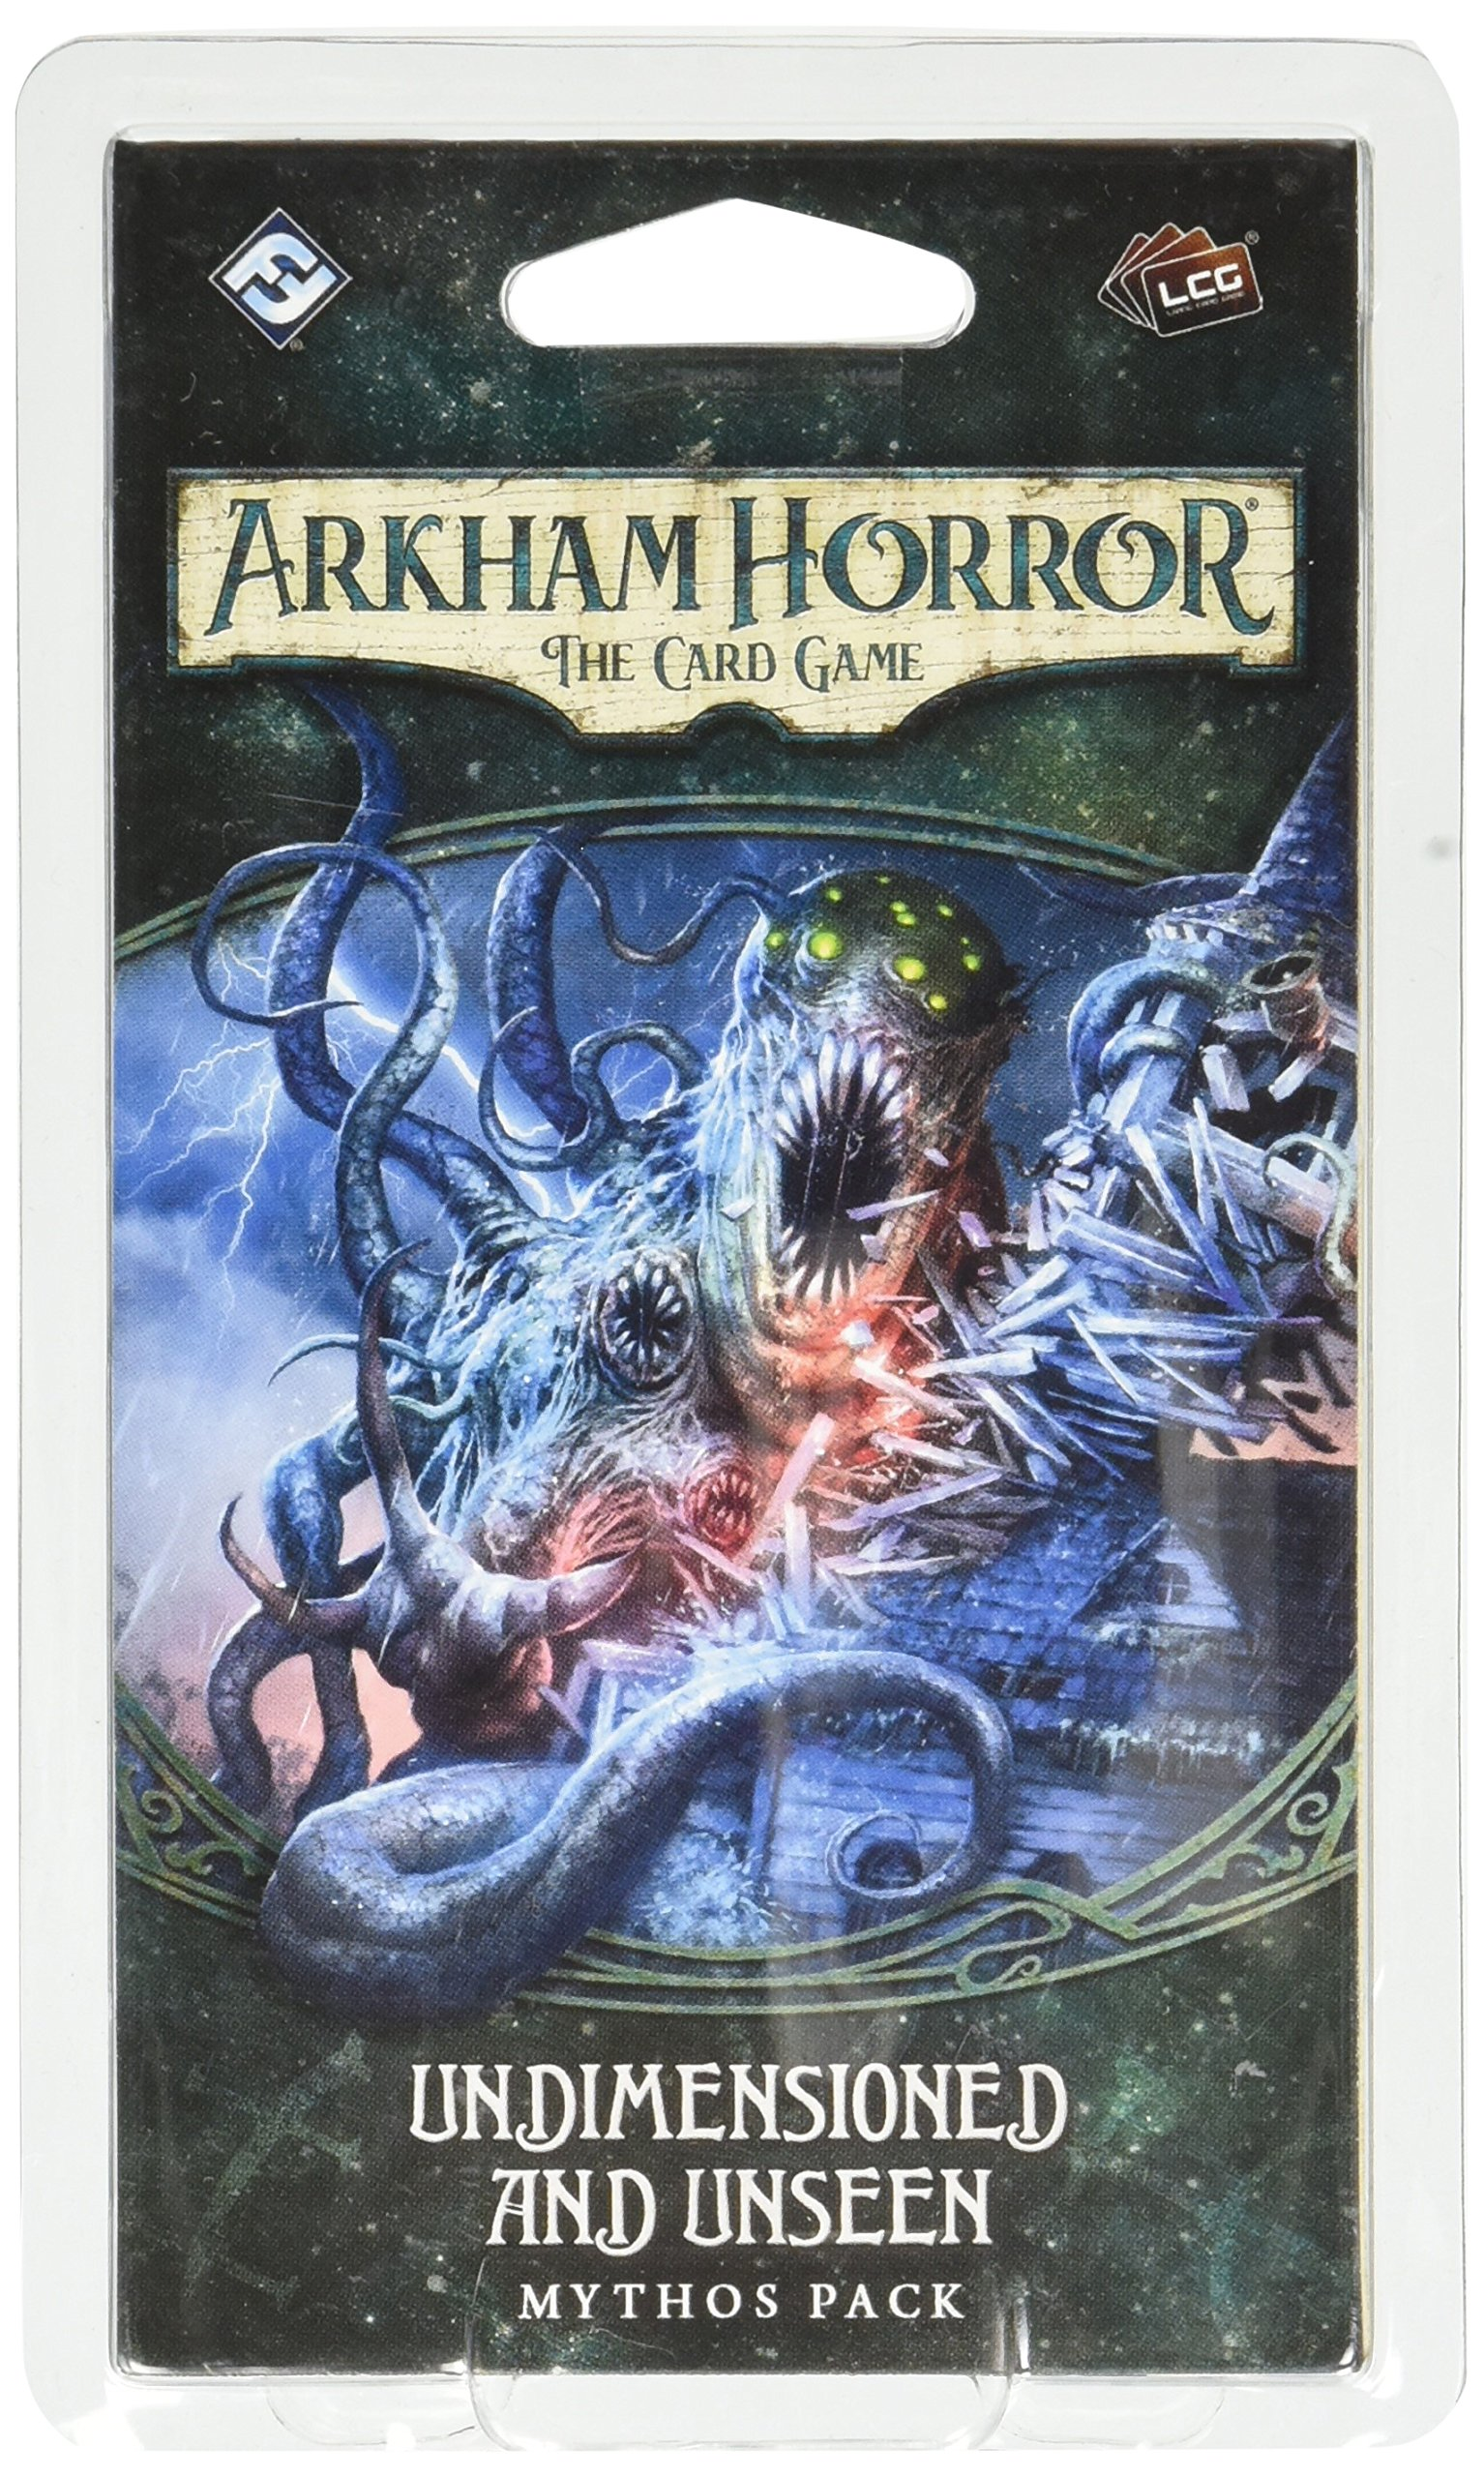 Arkham Horror: The Card Game - Undimensioned and Unseen Mythos Pack